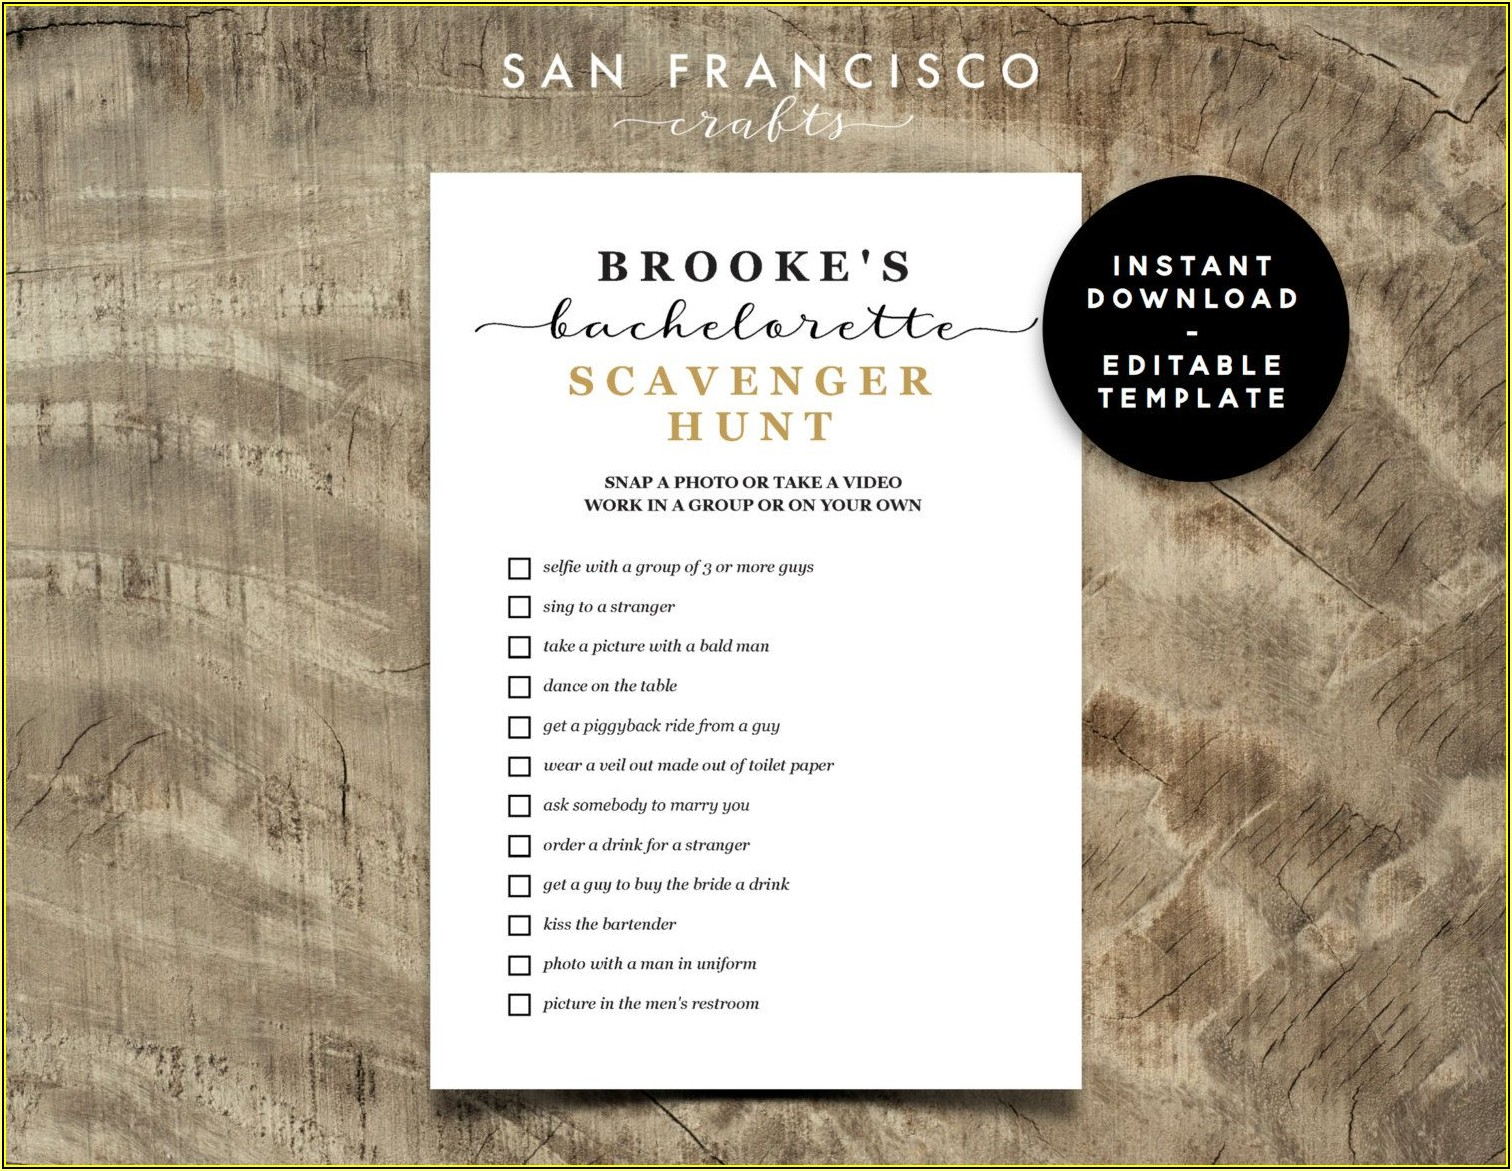 Free Bachelorette Party Scavenger Hunt Template